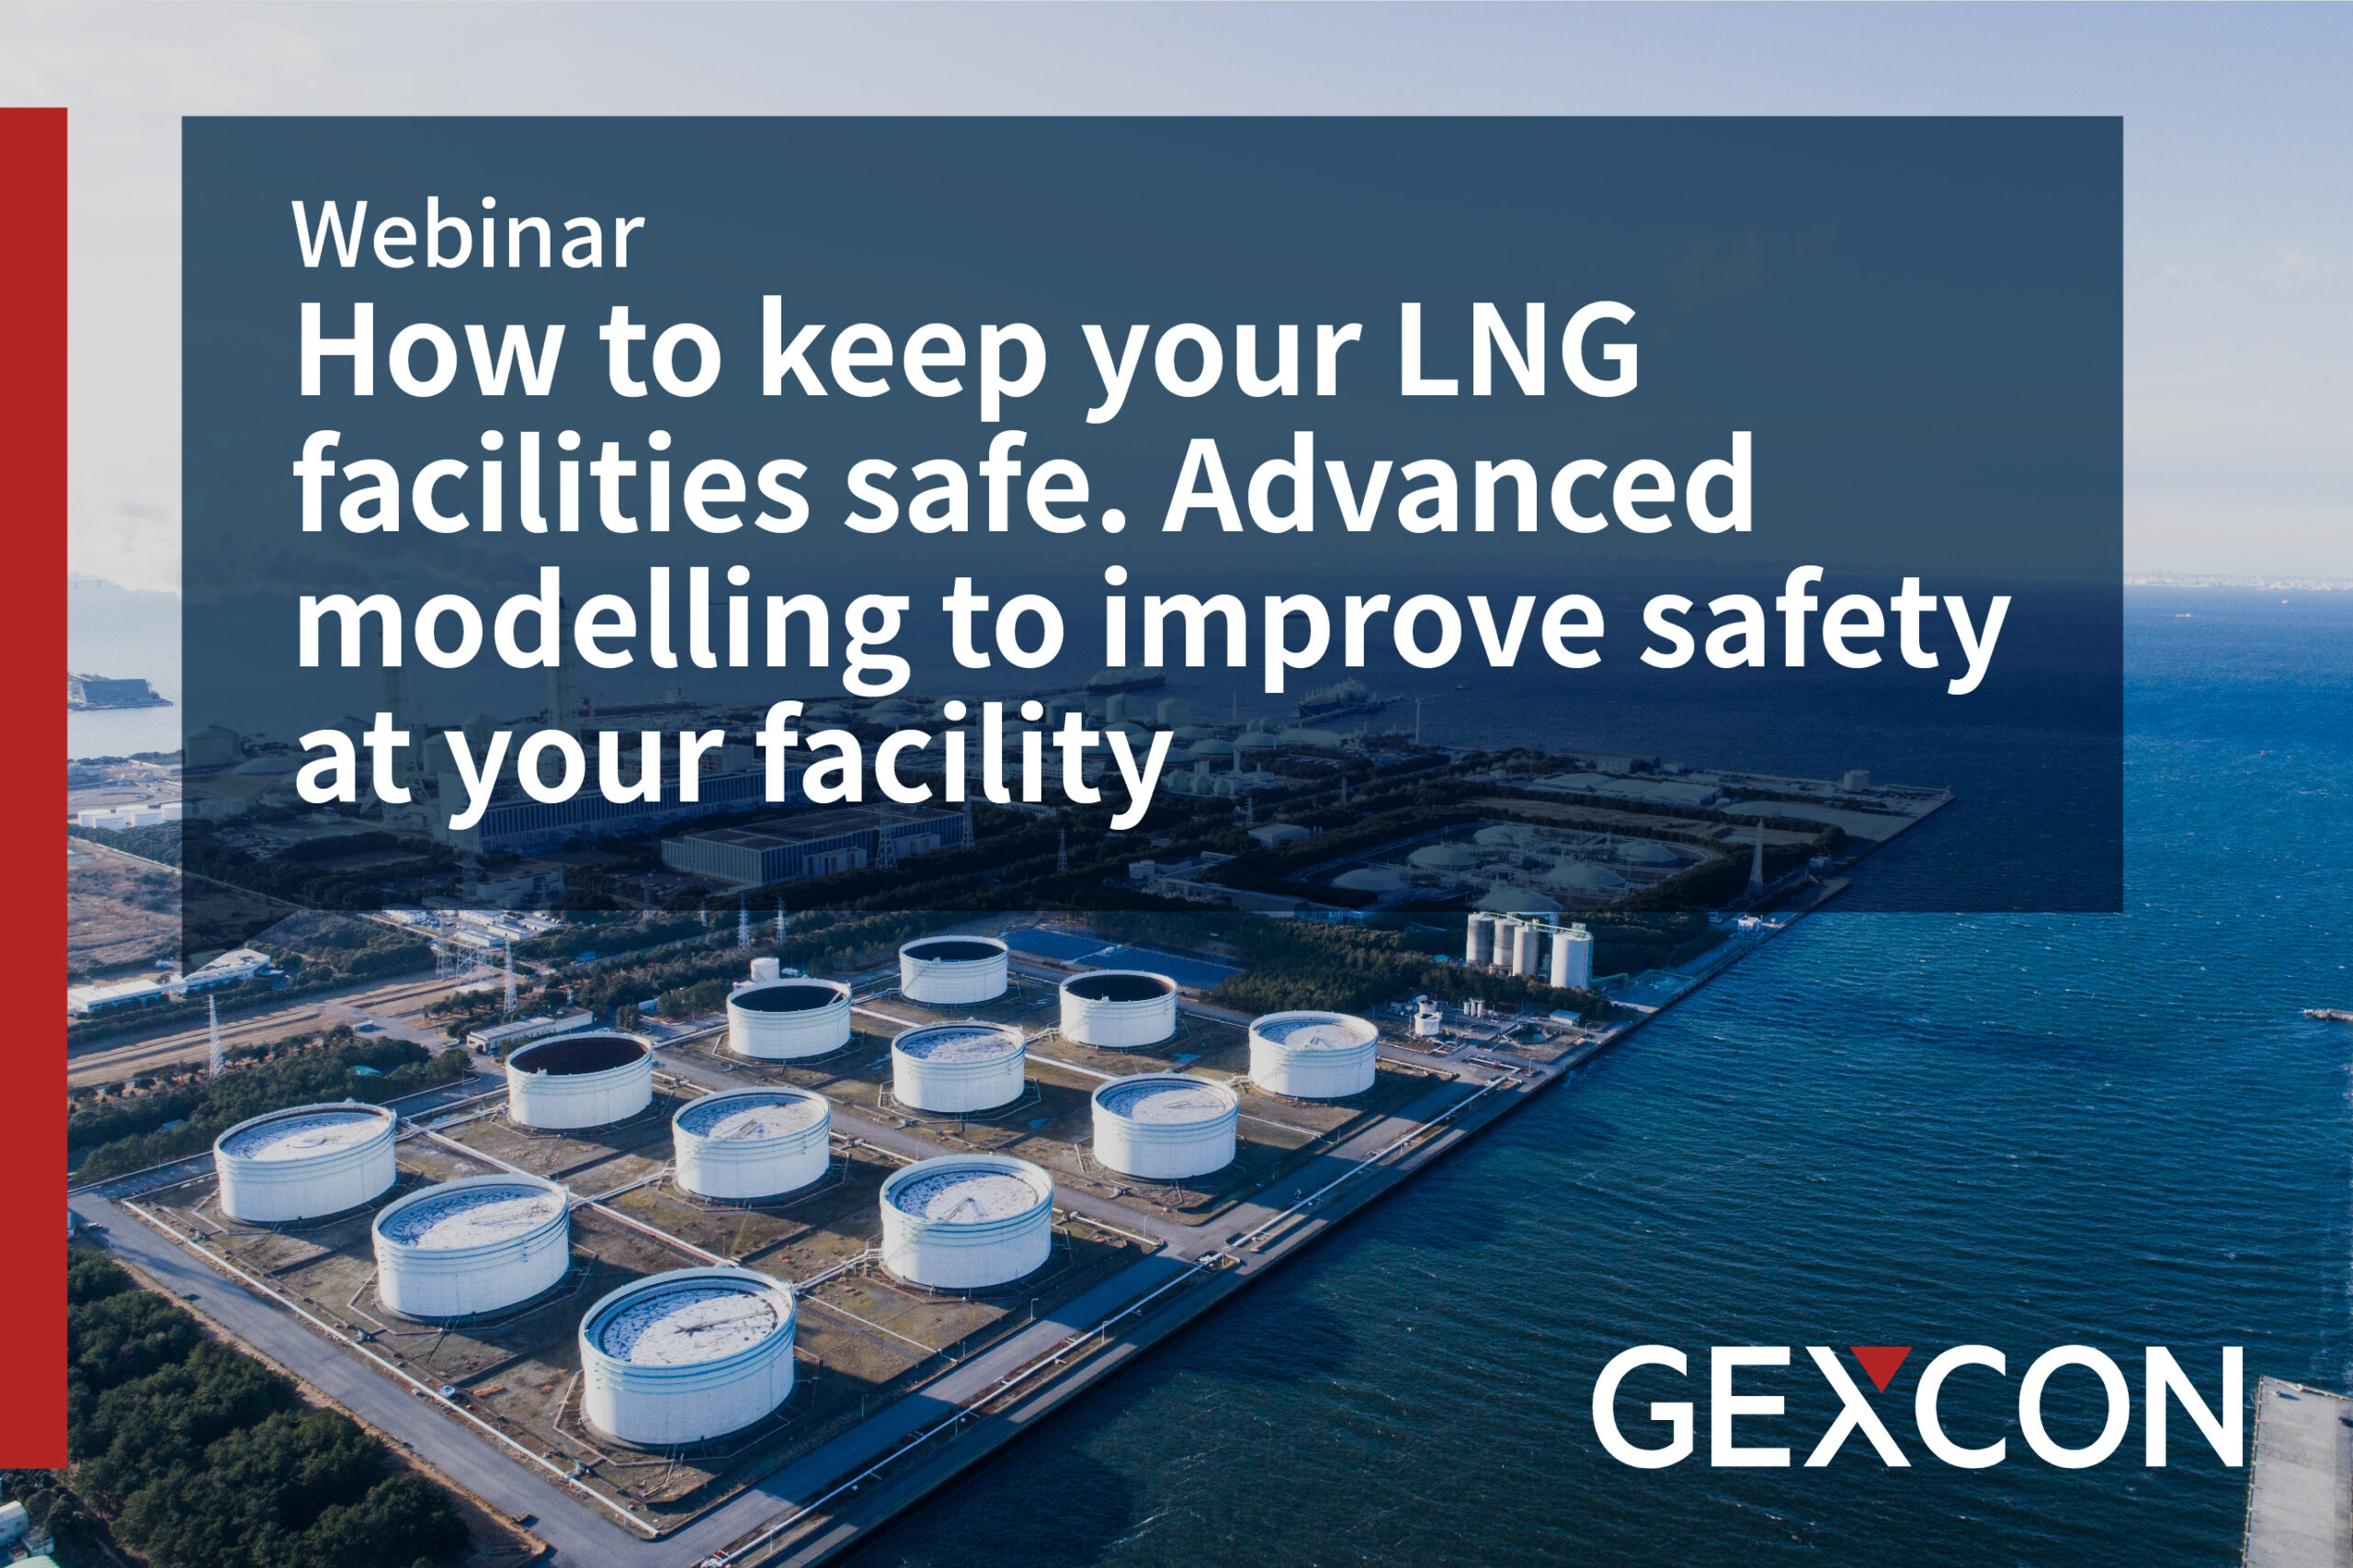 Webinar - How to keep your LNG facilities safe. Advanced modeling to improve safety at your facility